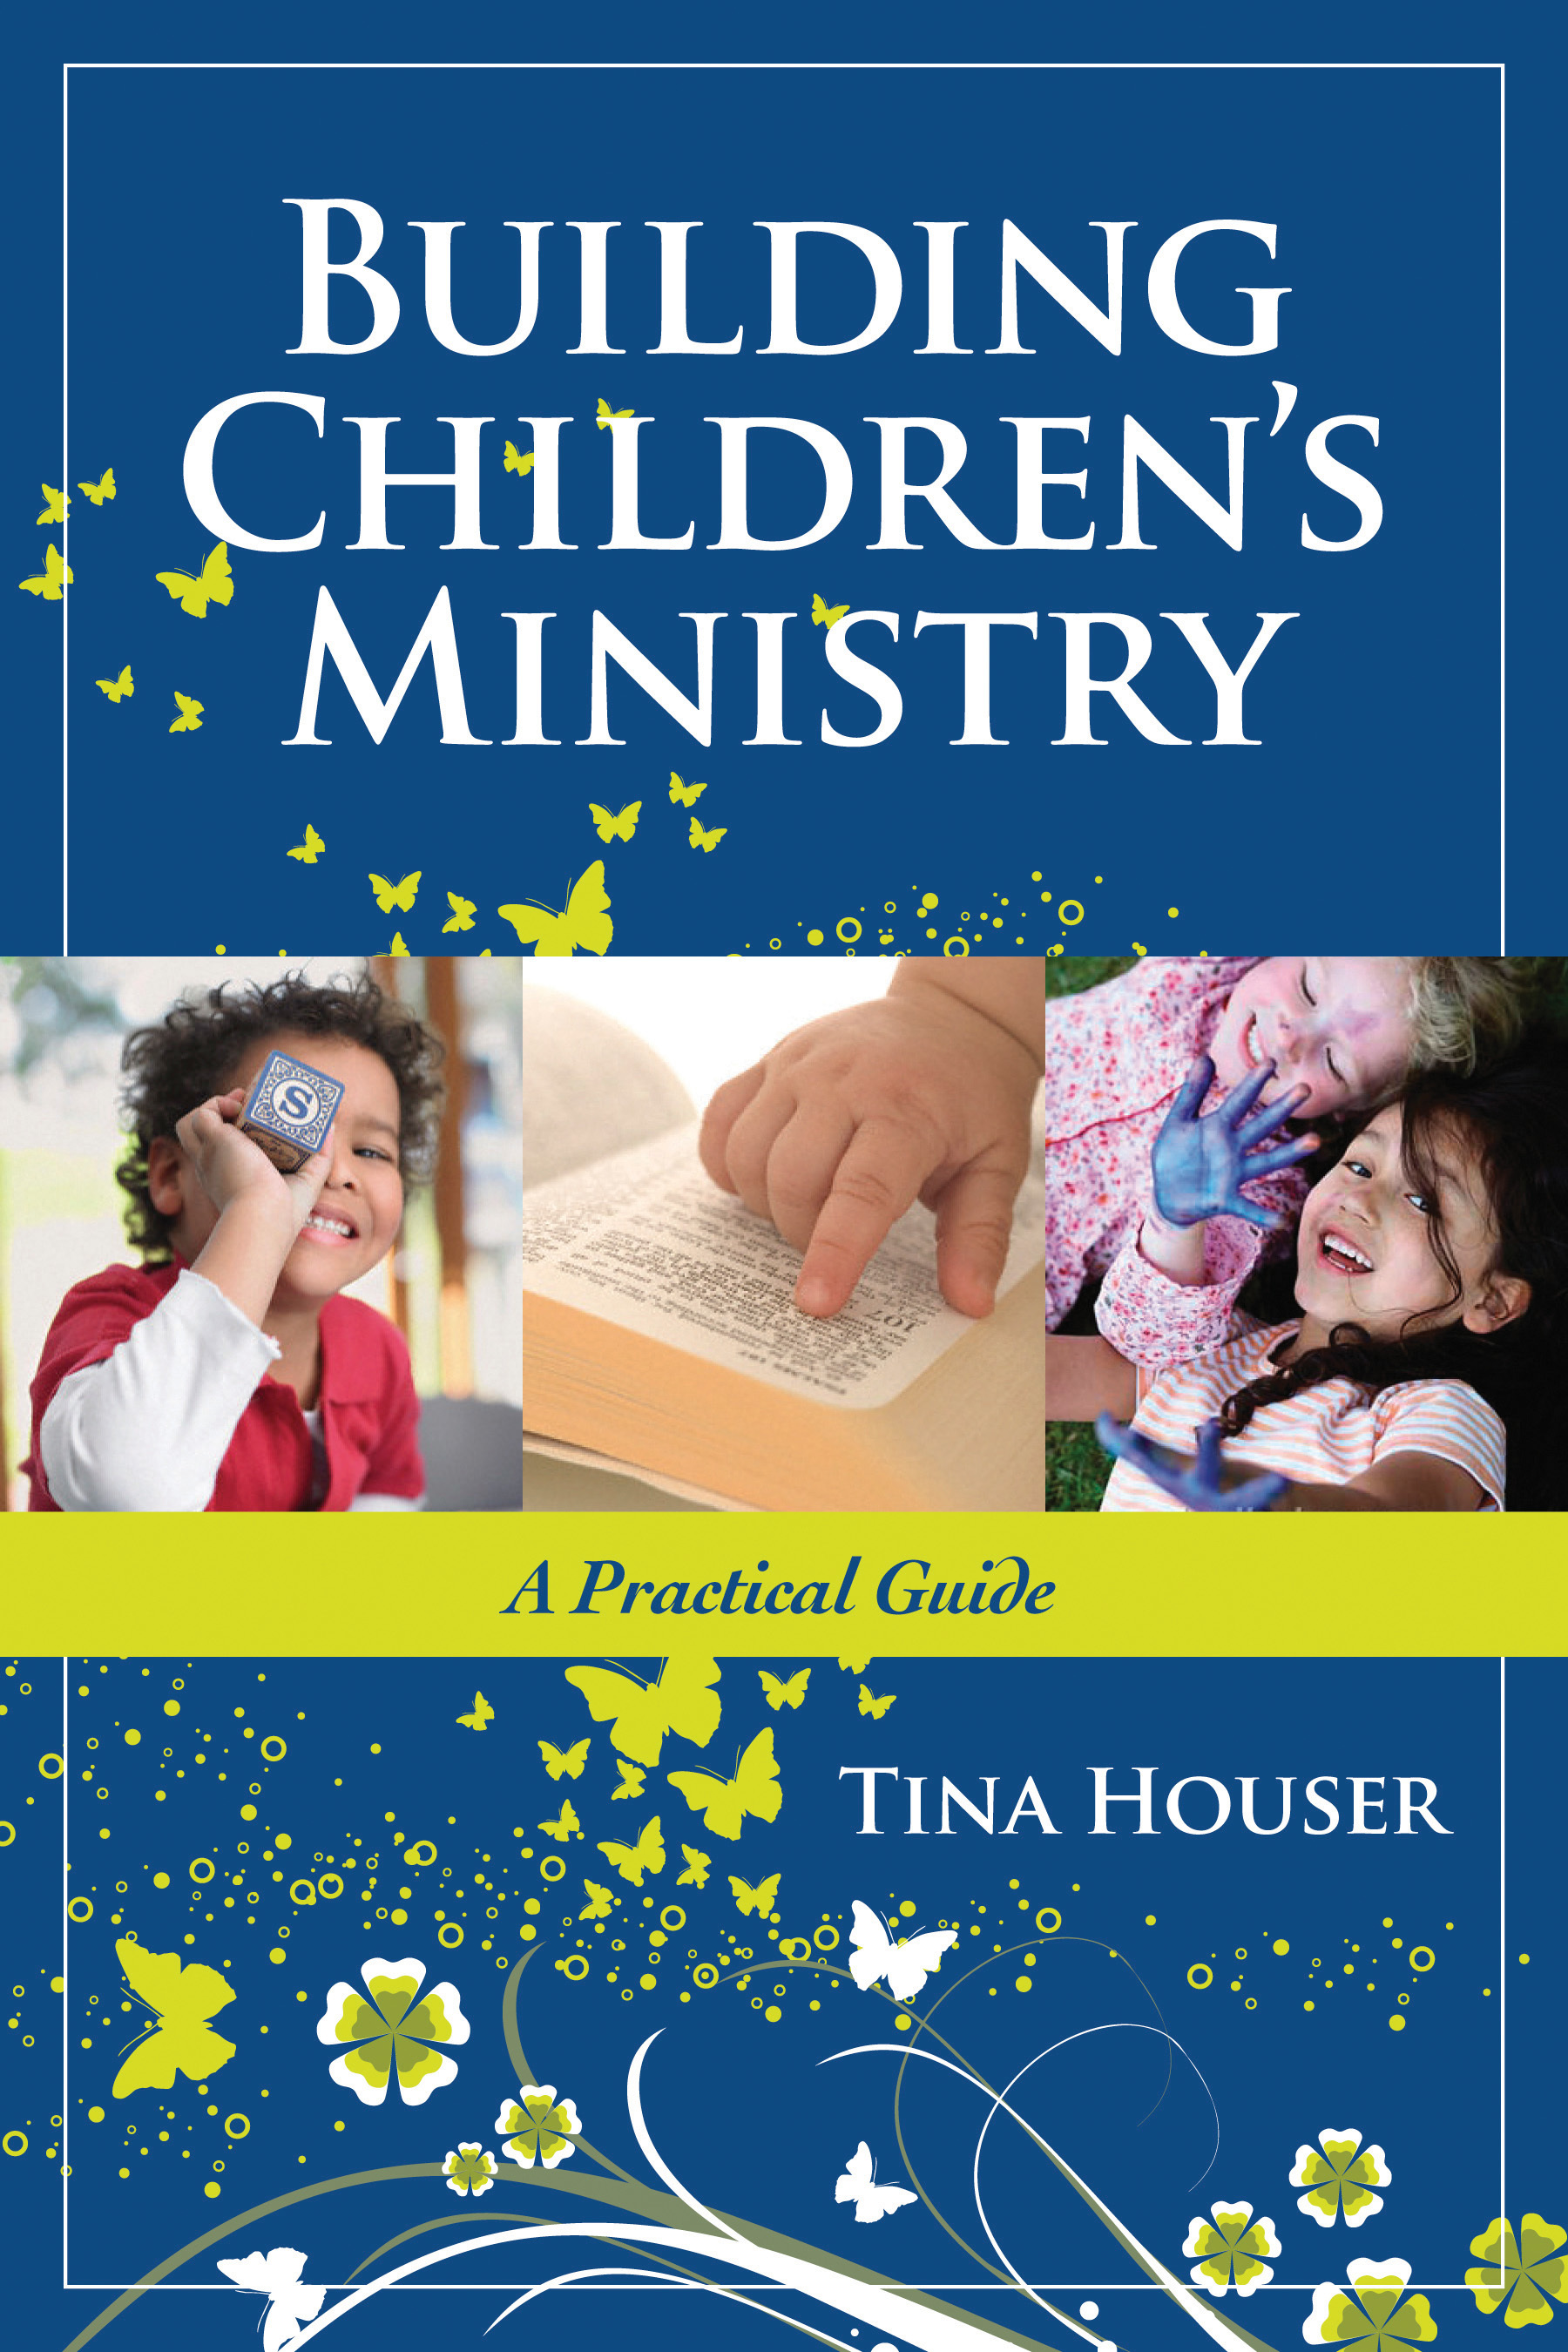 Building Children's Ministry: A Practical Guide